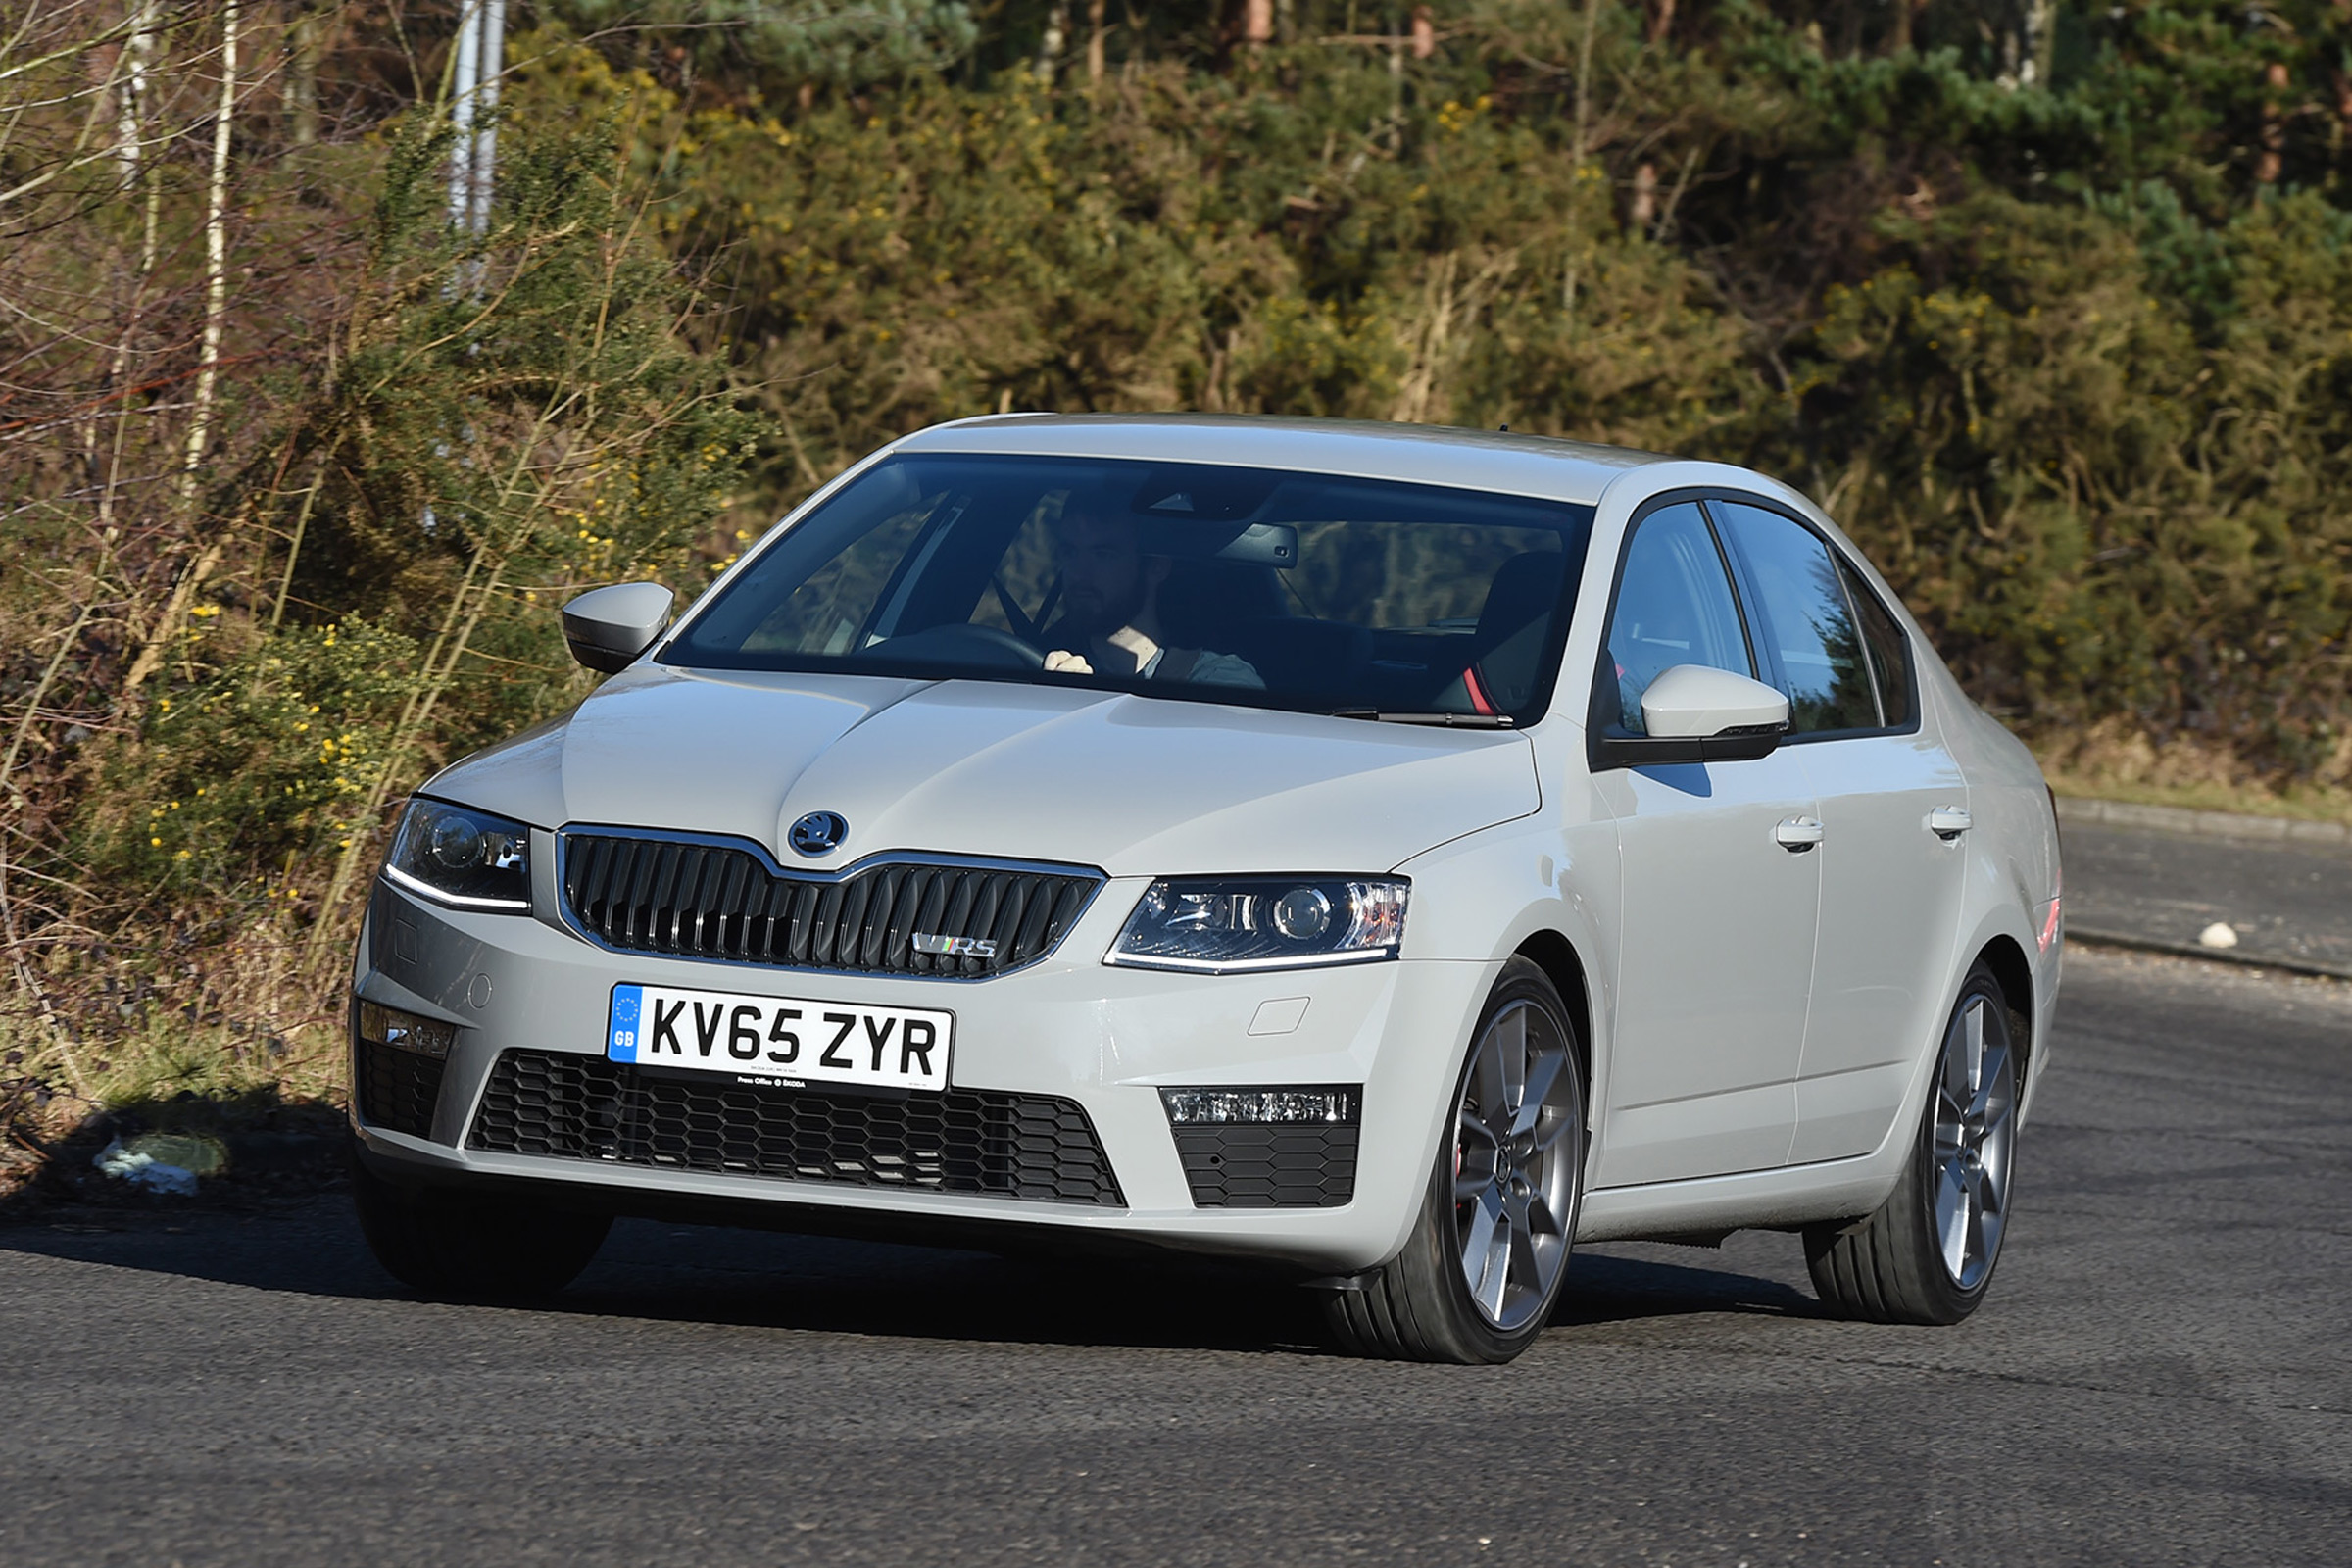 New Skoda Octavia vRS 4x4 2016 review | Auto Express